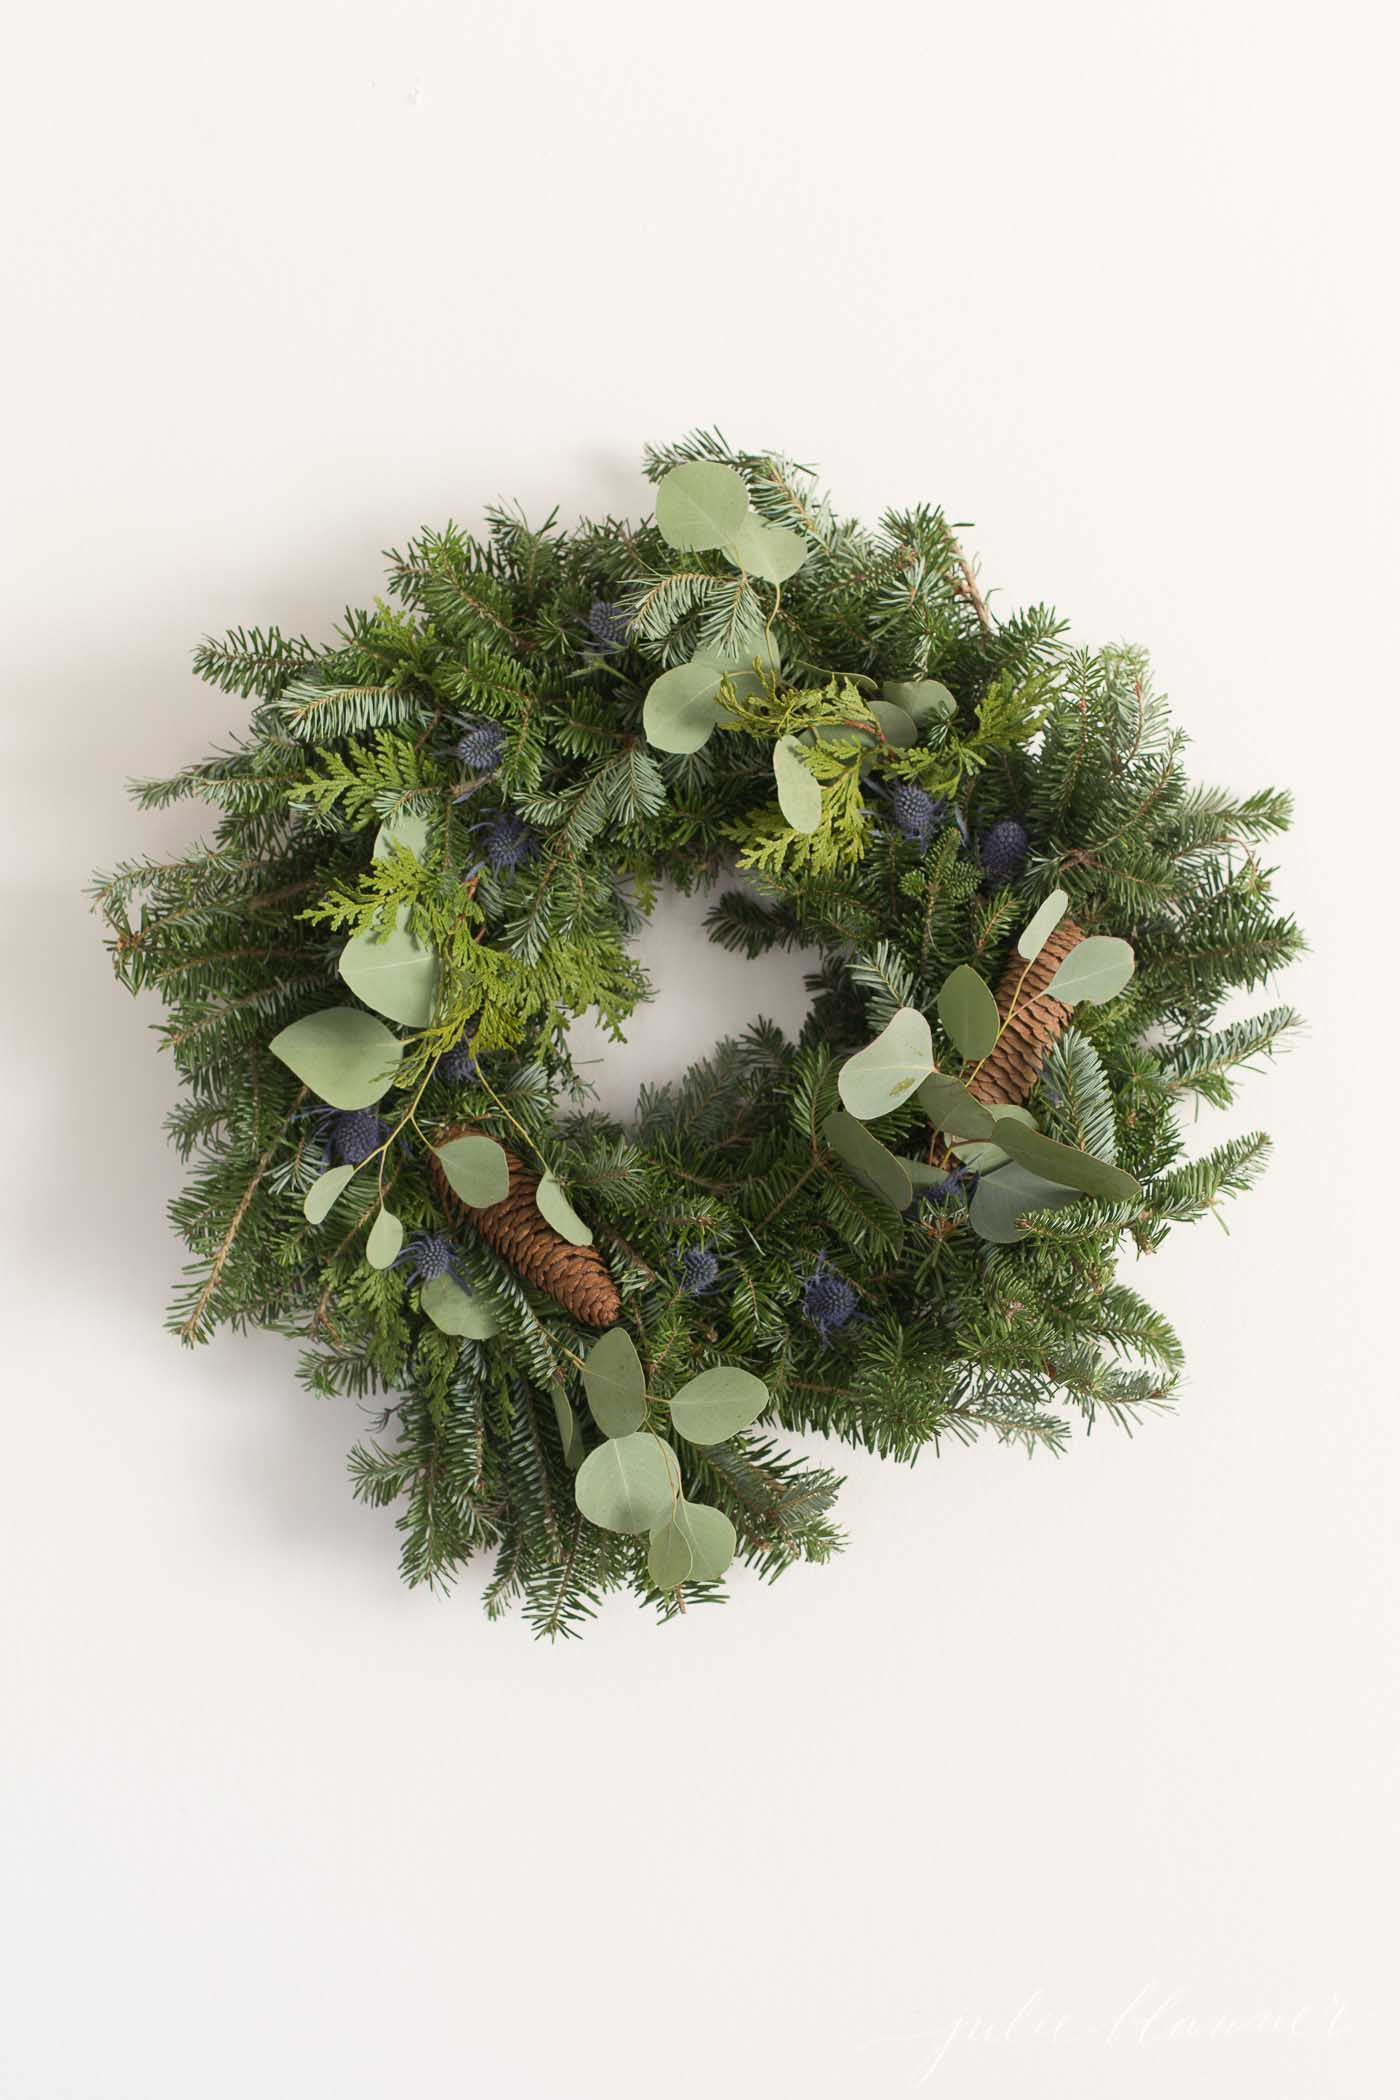 christmas wreath made of fresh greenery.